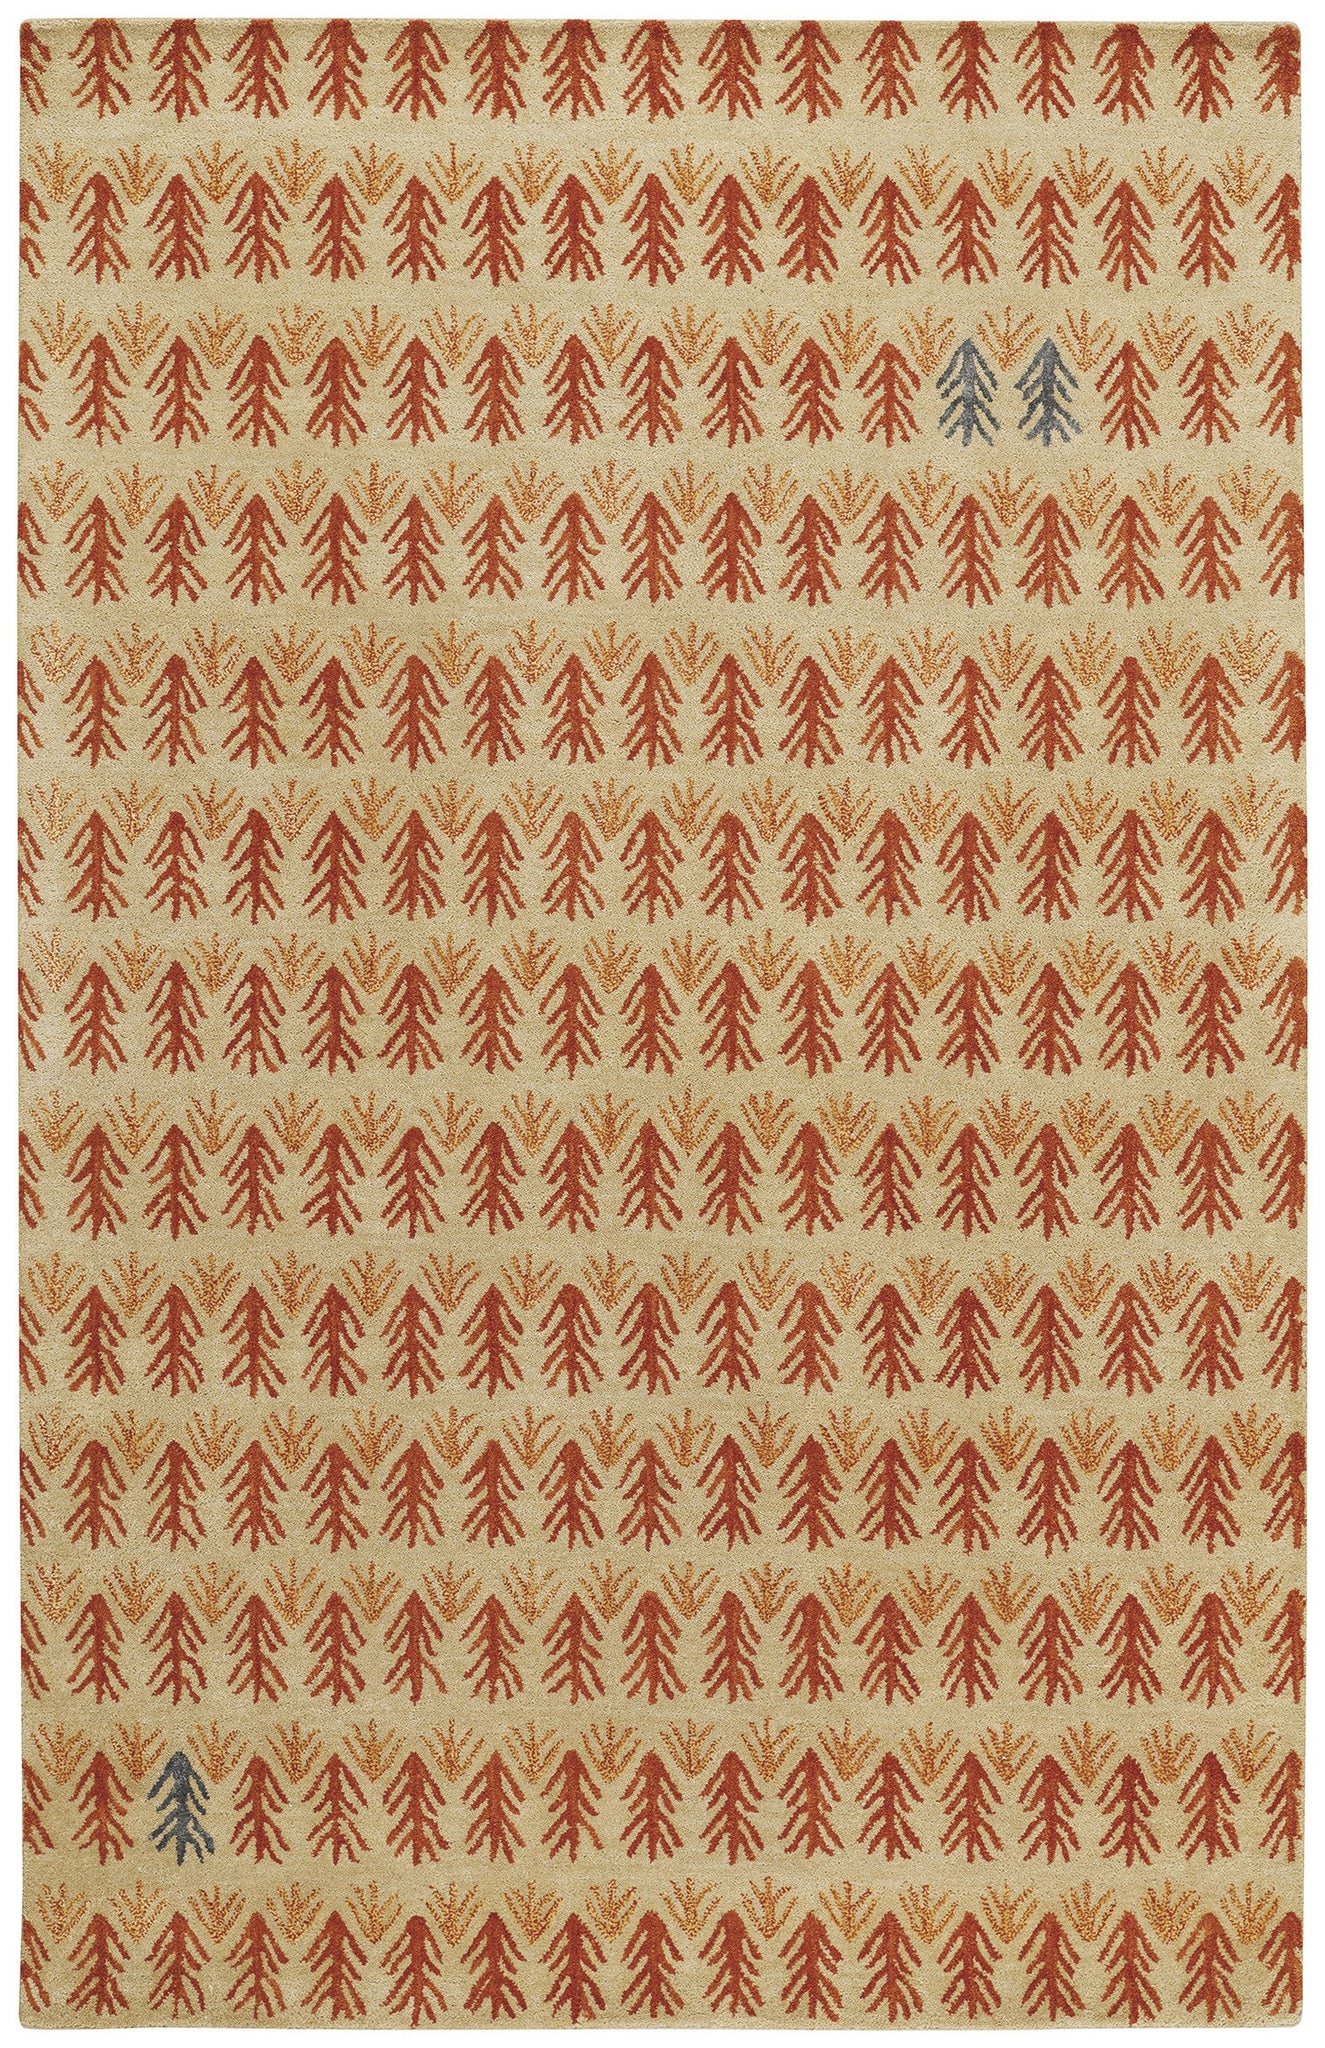 Capel Twigs 3270 Ash 850 Area Rug by Genevieve Gorder main image